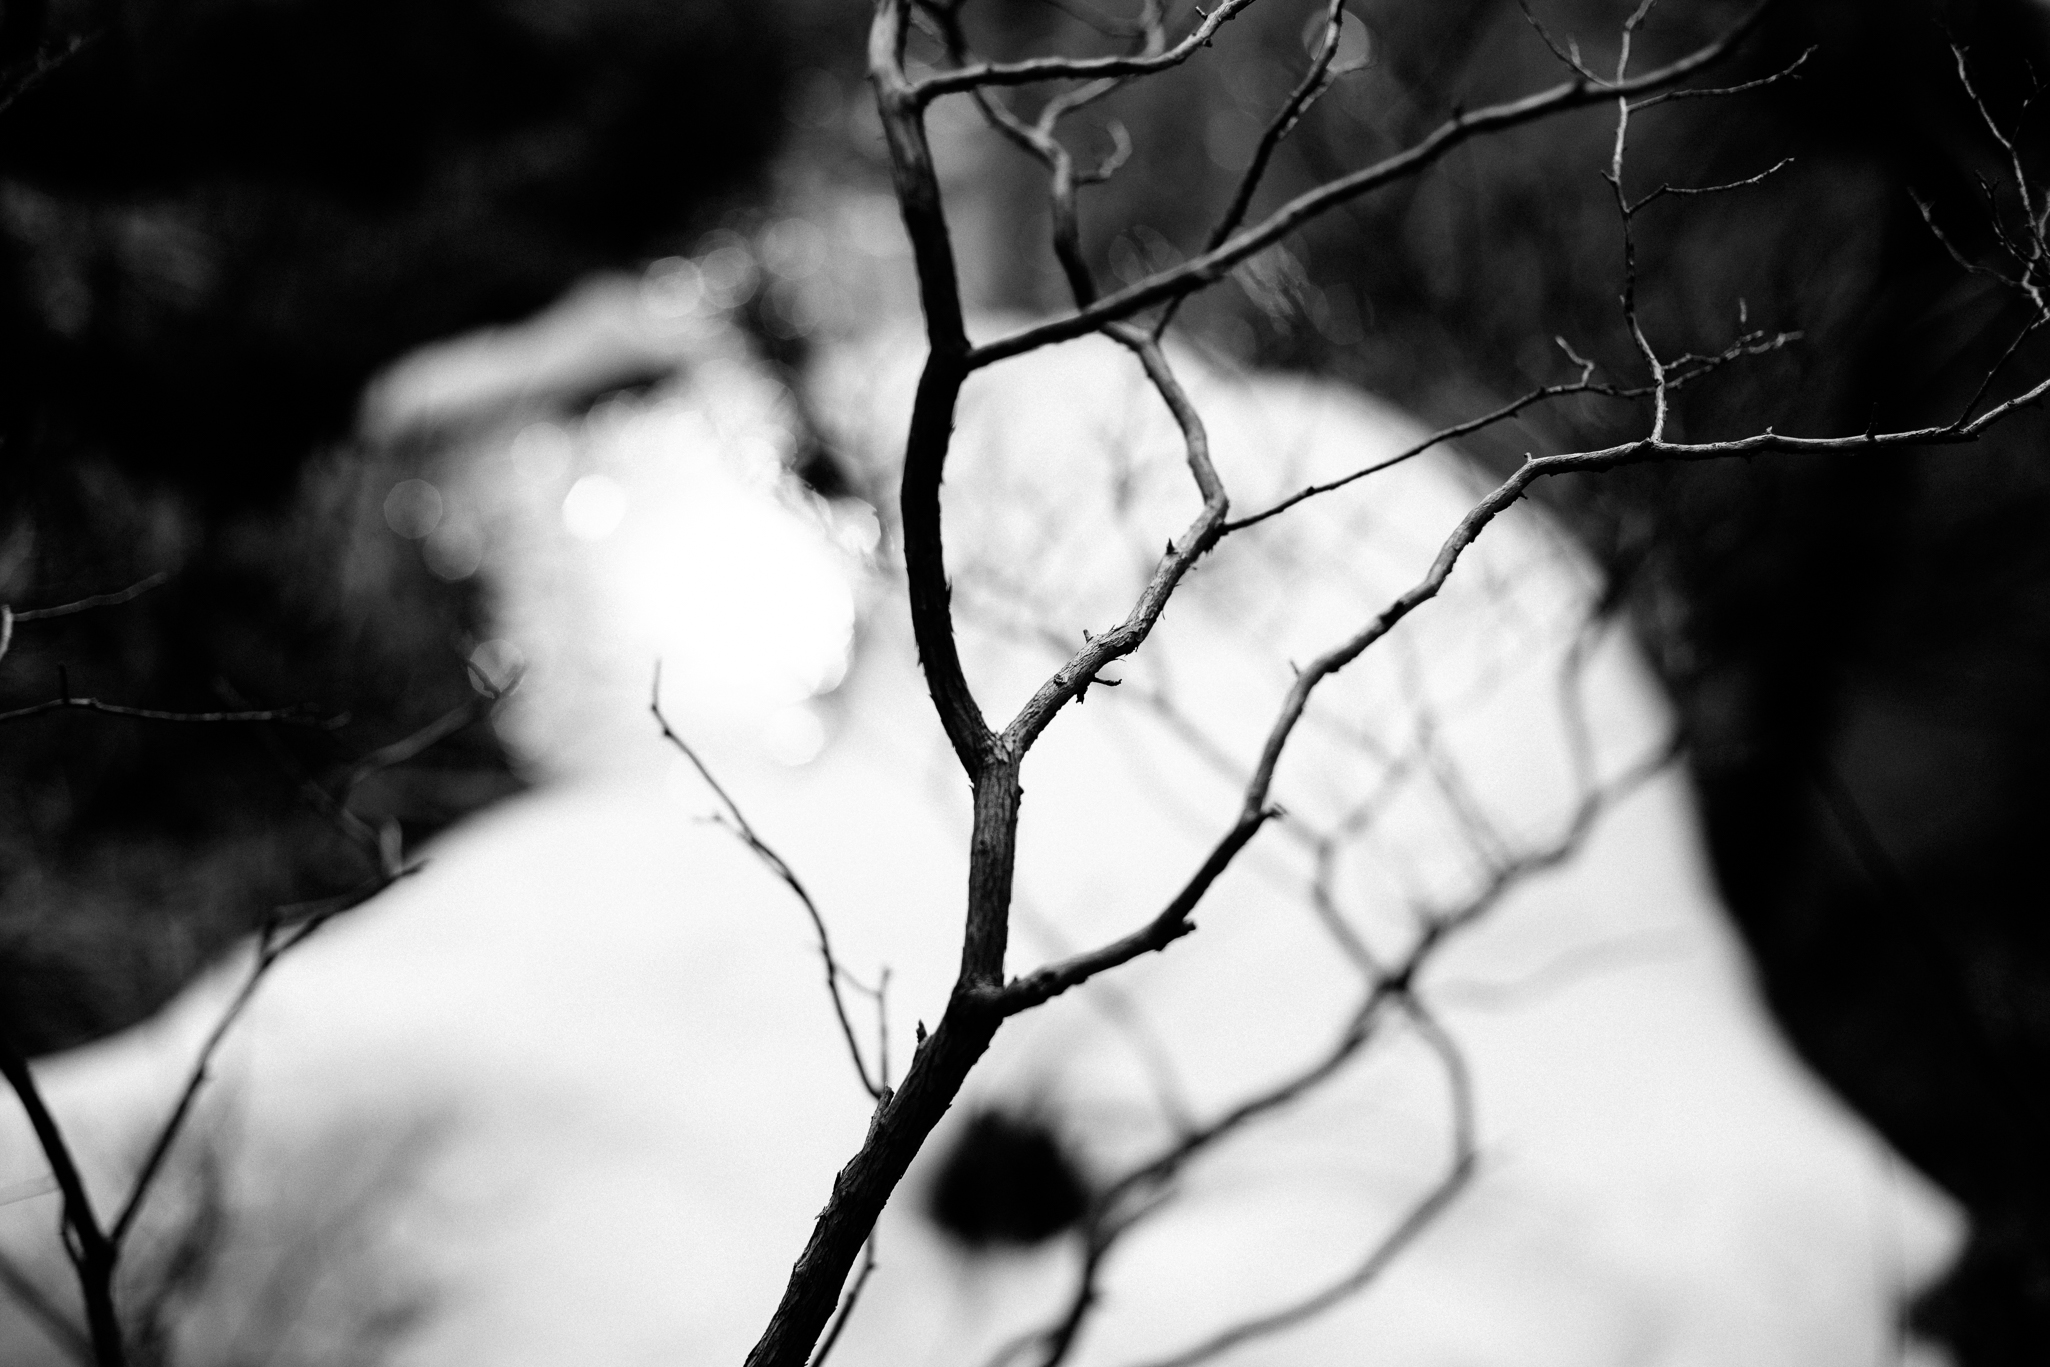 blackandwhite-tree-branch-in-snow